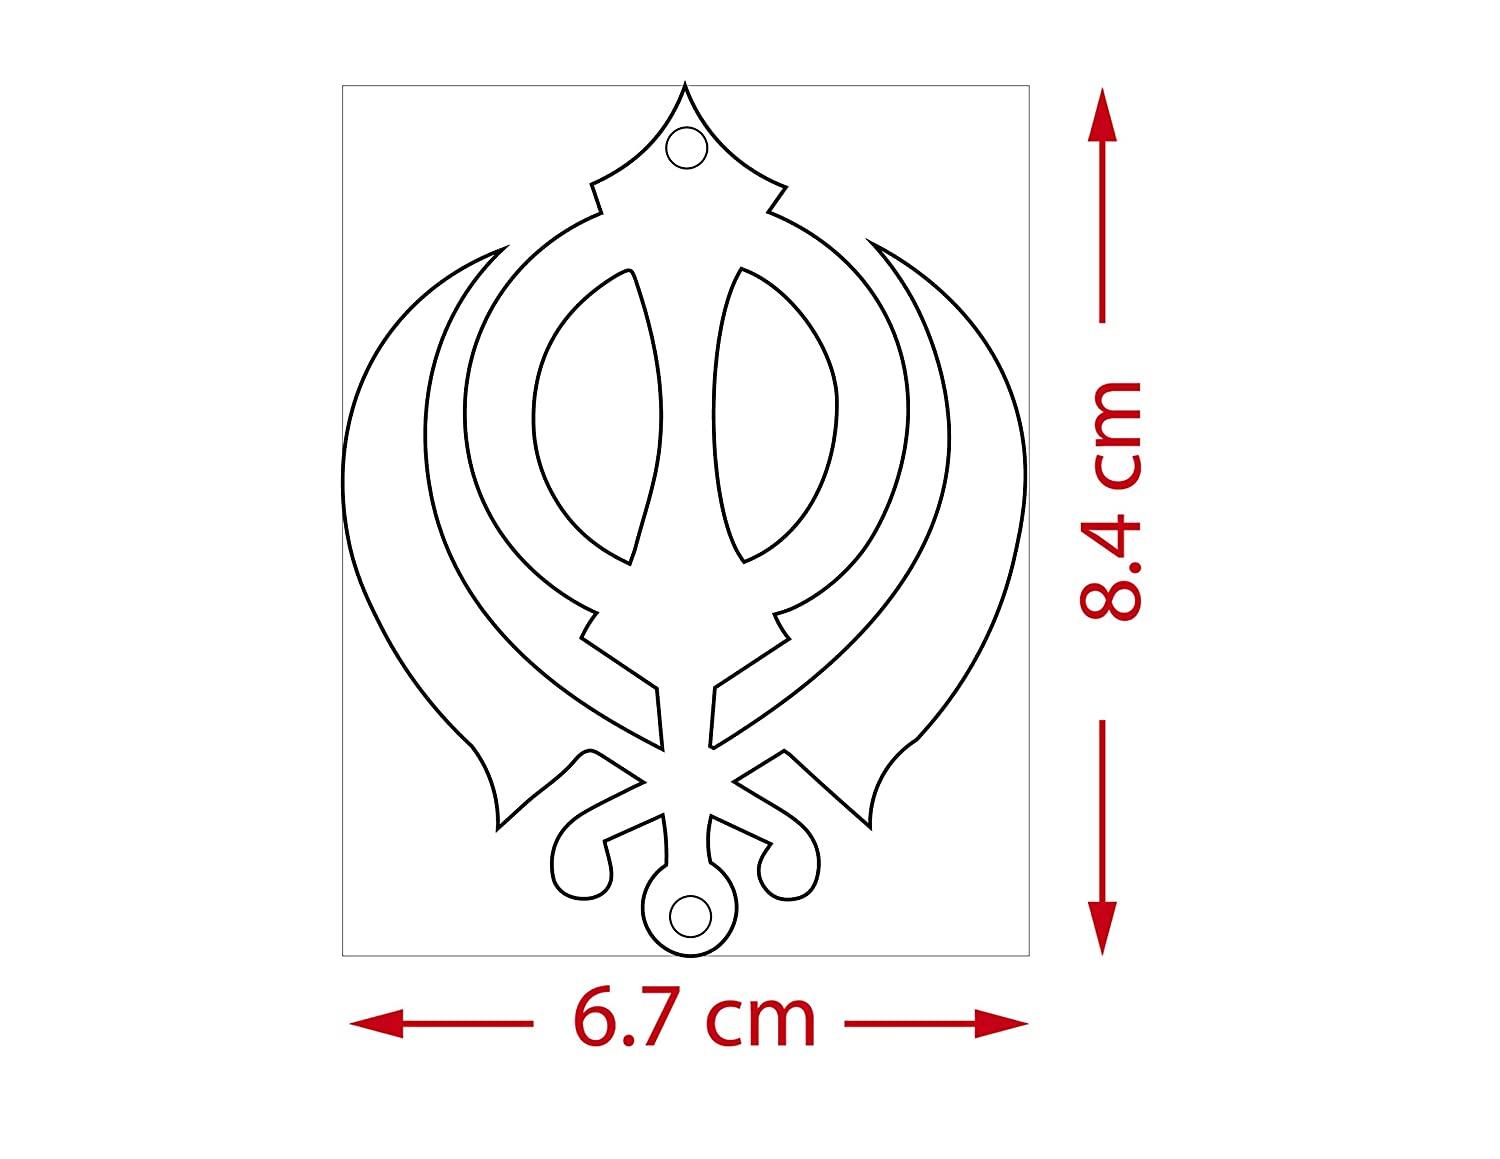 ADORAA Sikh Punjabi Khanda Symbol Rear View Mirror Car Hanging Ornament//Perfect Car Charm Pendant//Amulet Accessories for Car D/écor in Brass for Divine Blessings /& Safety//Protection